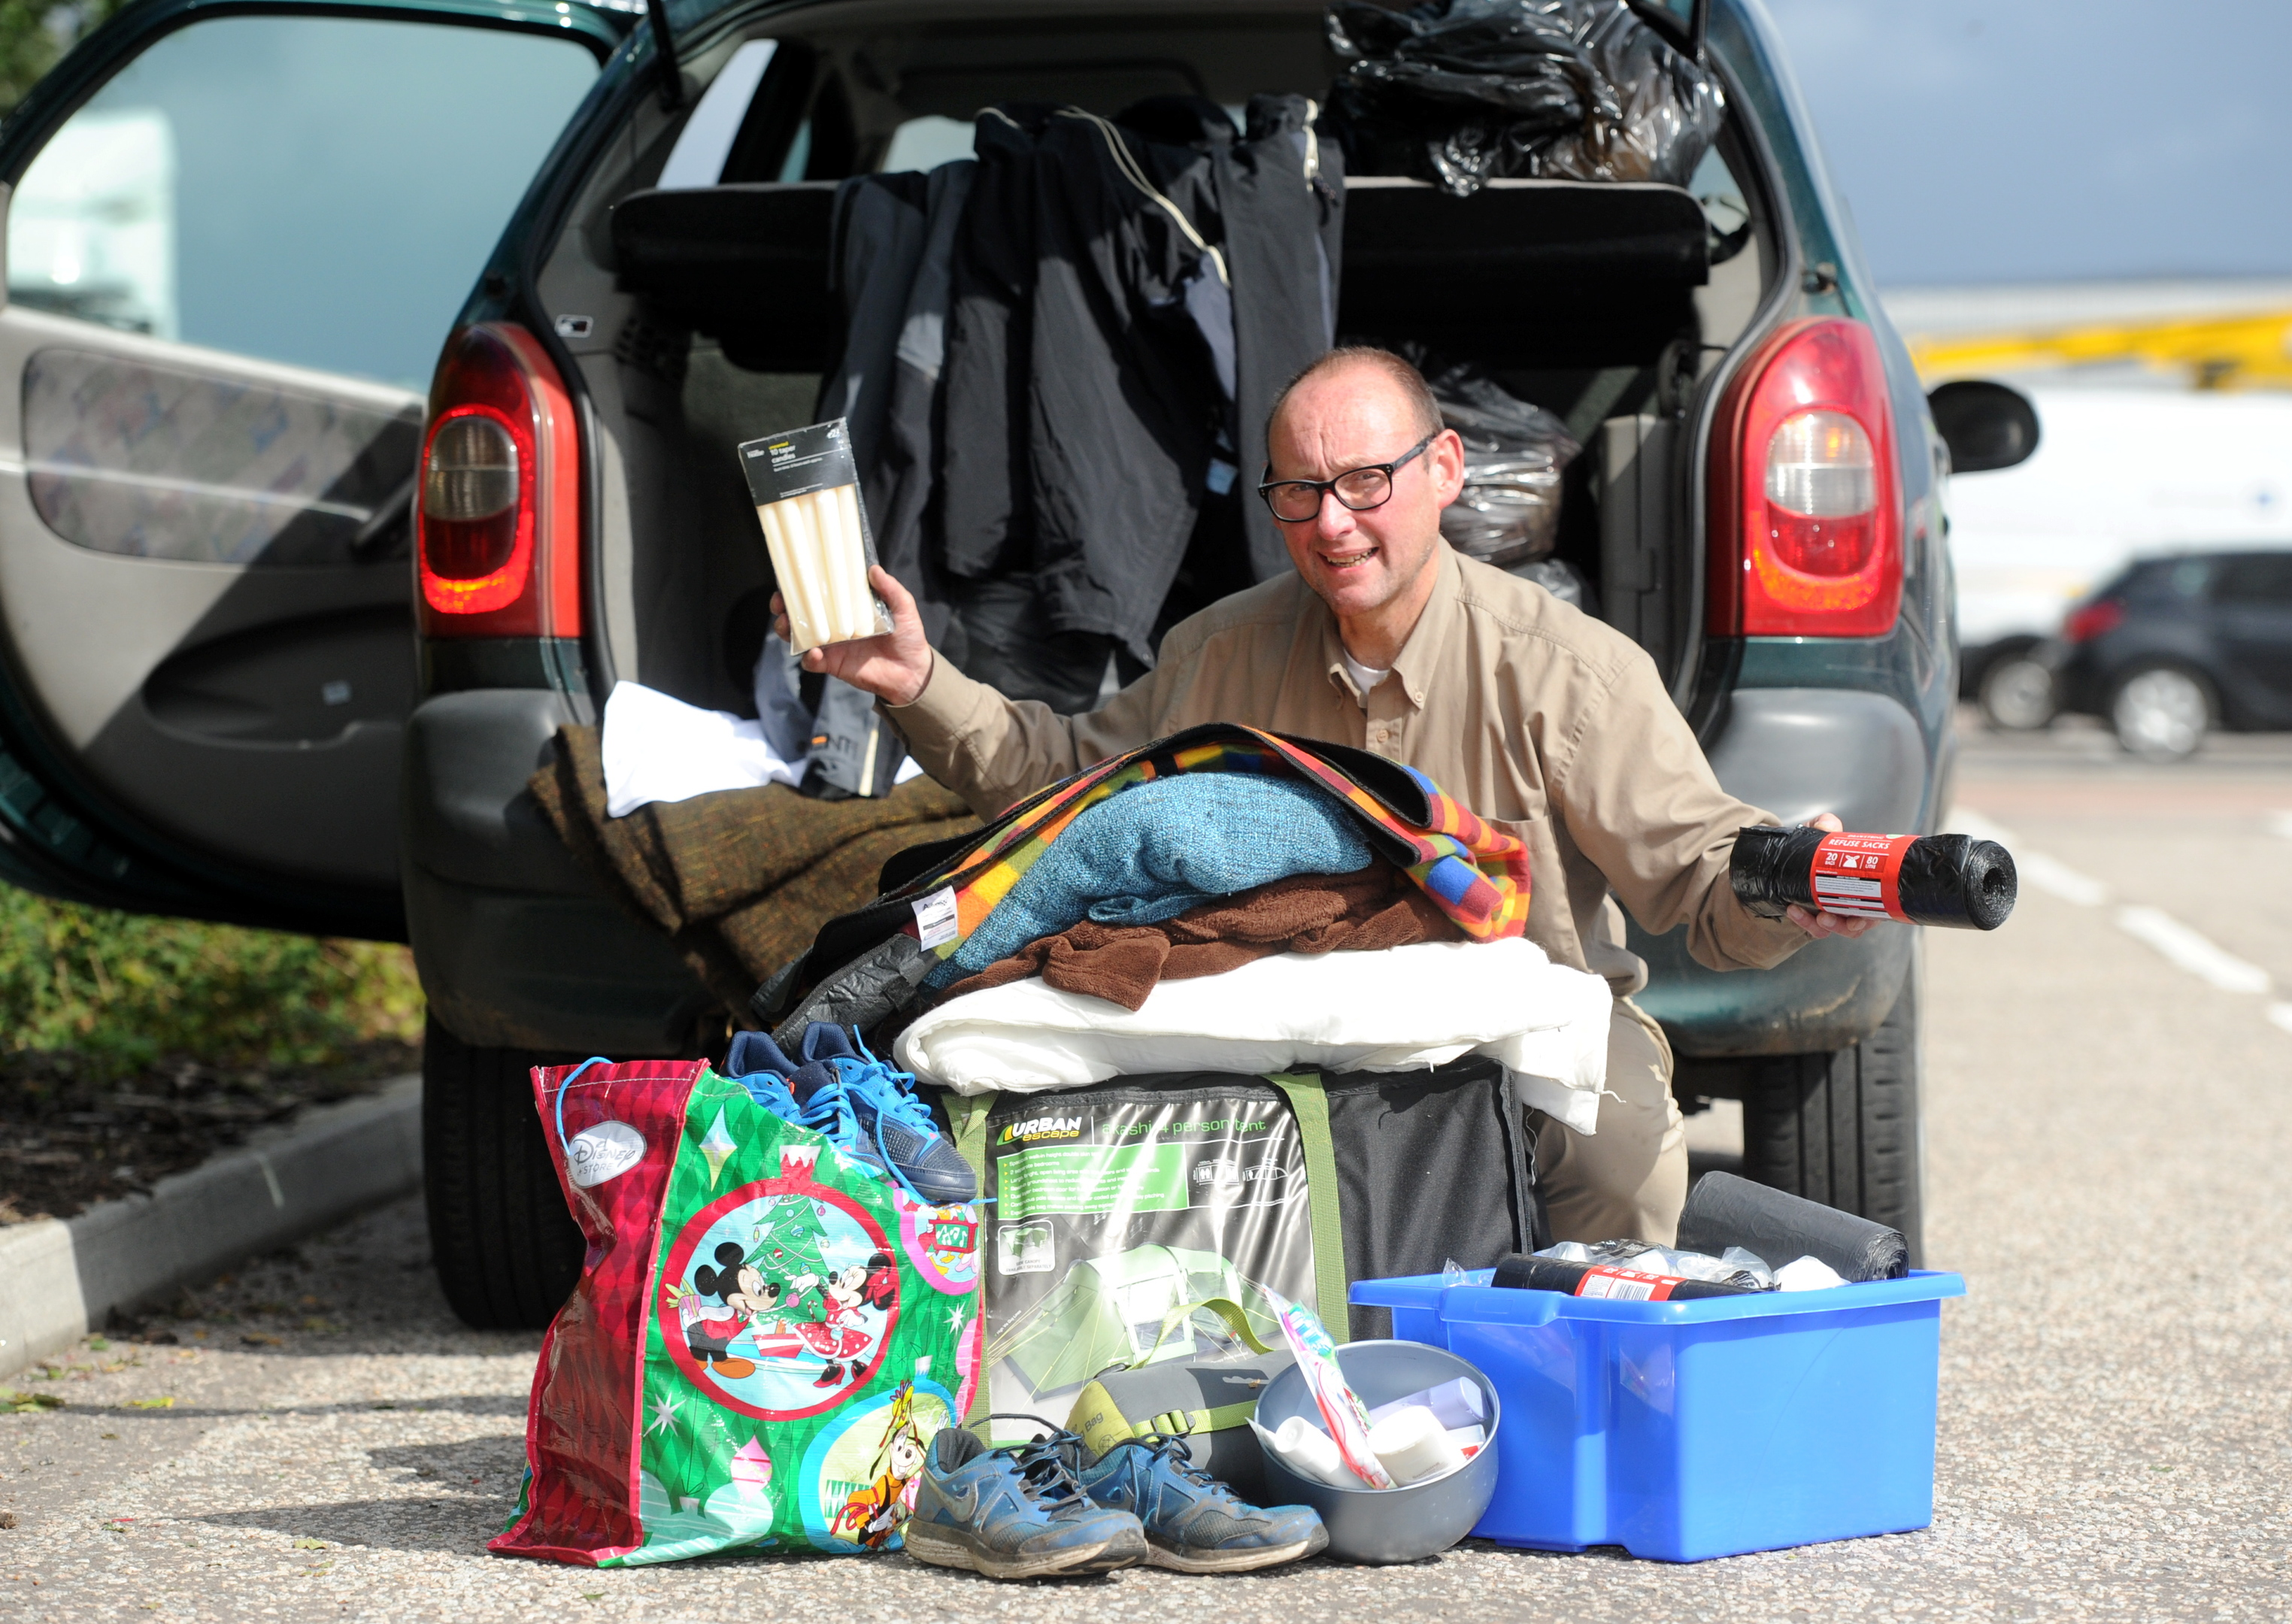 Nigel Lammas is collecting donations for refugees in Calais.